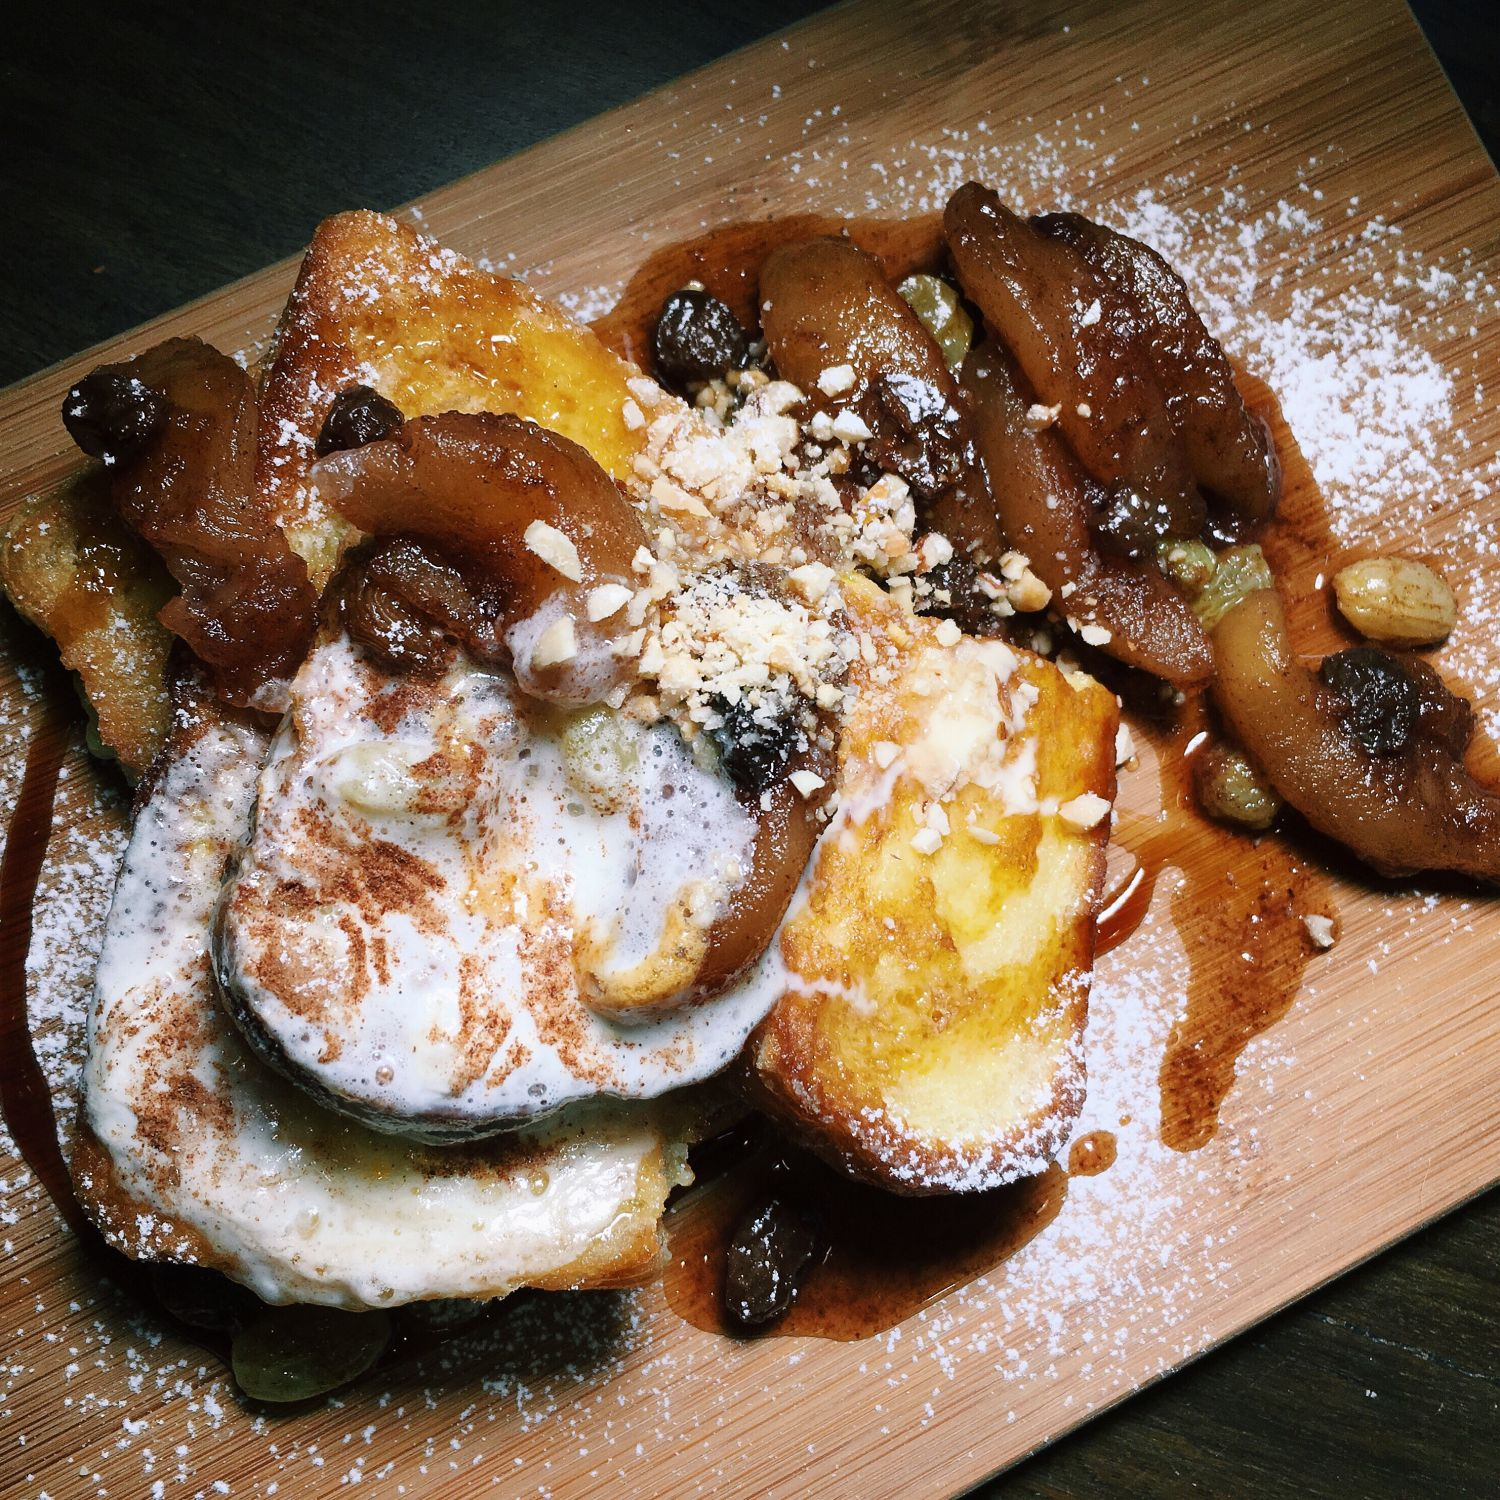 Classic French toast - Shen & Co.